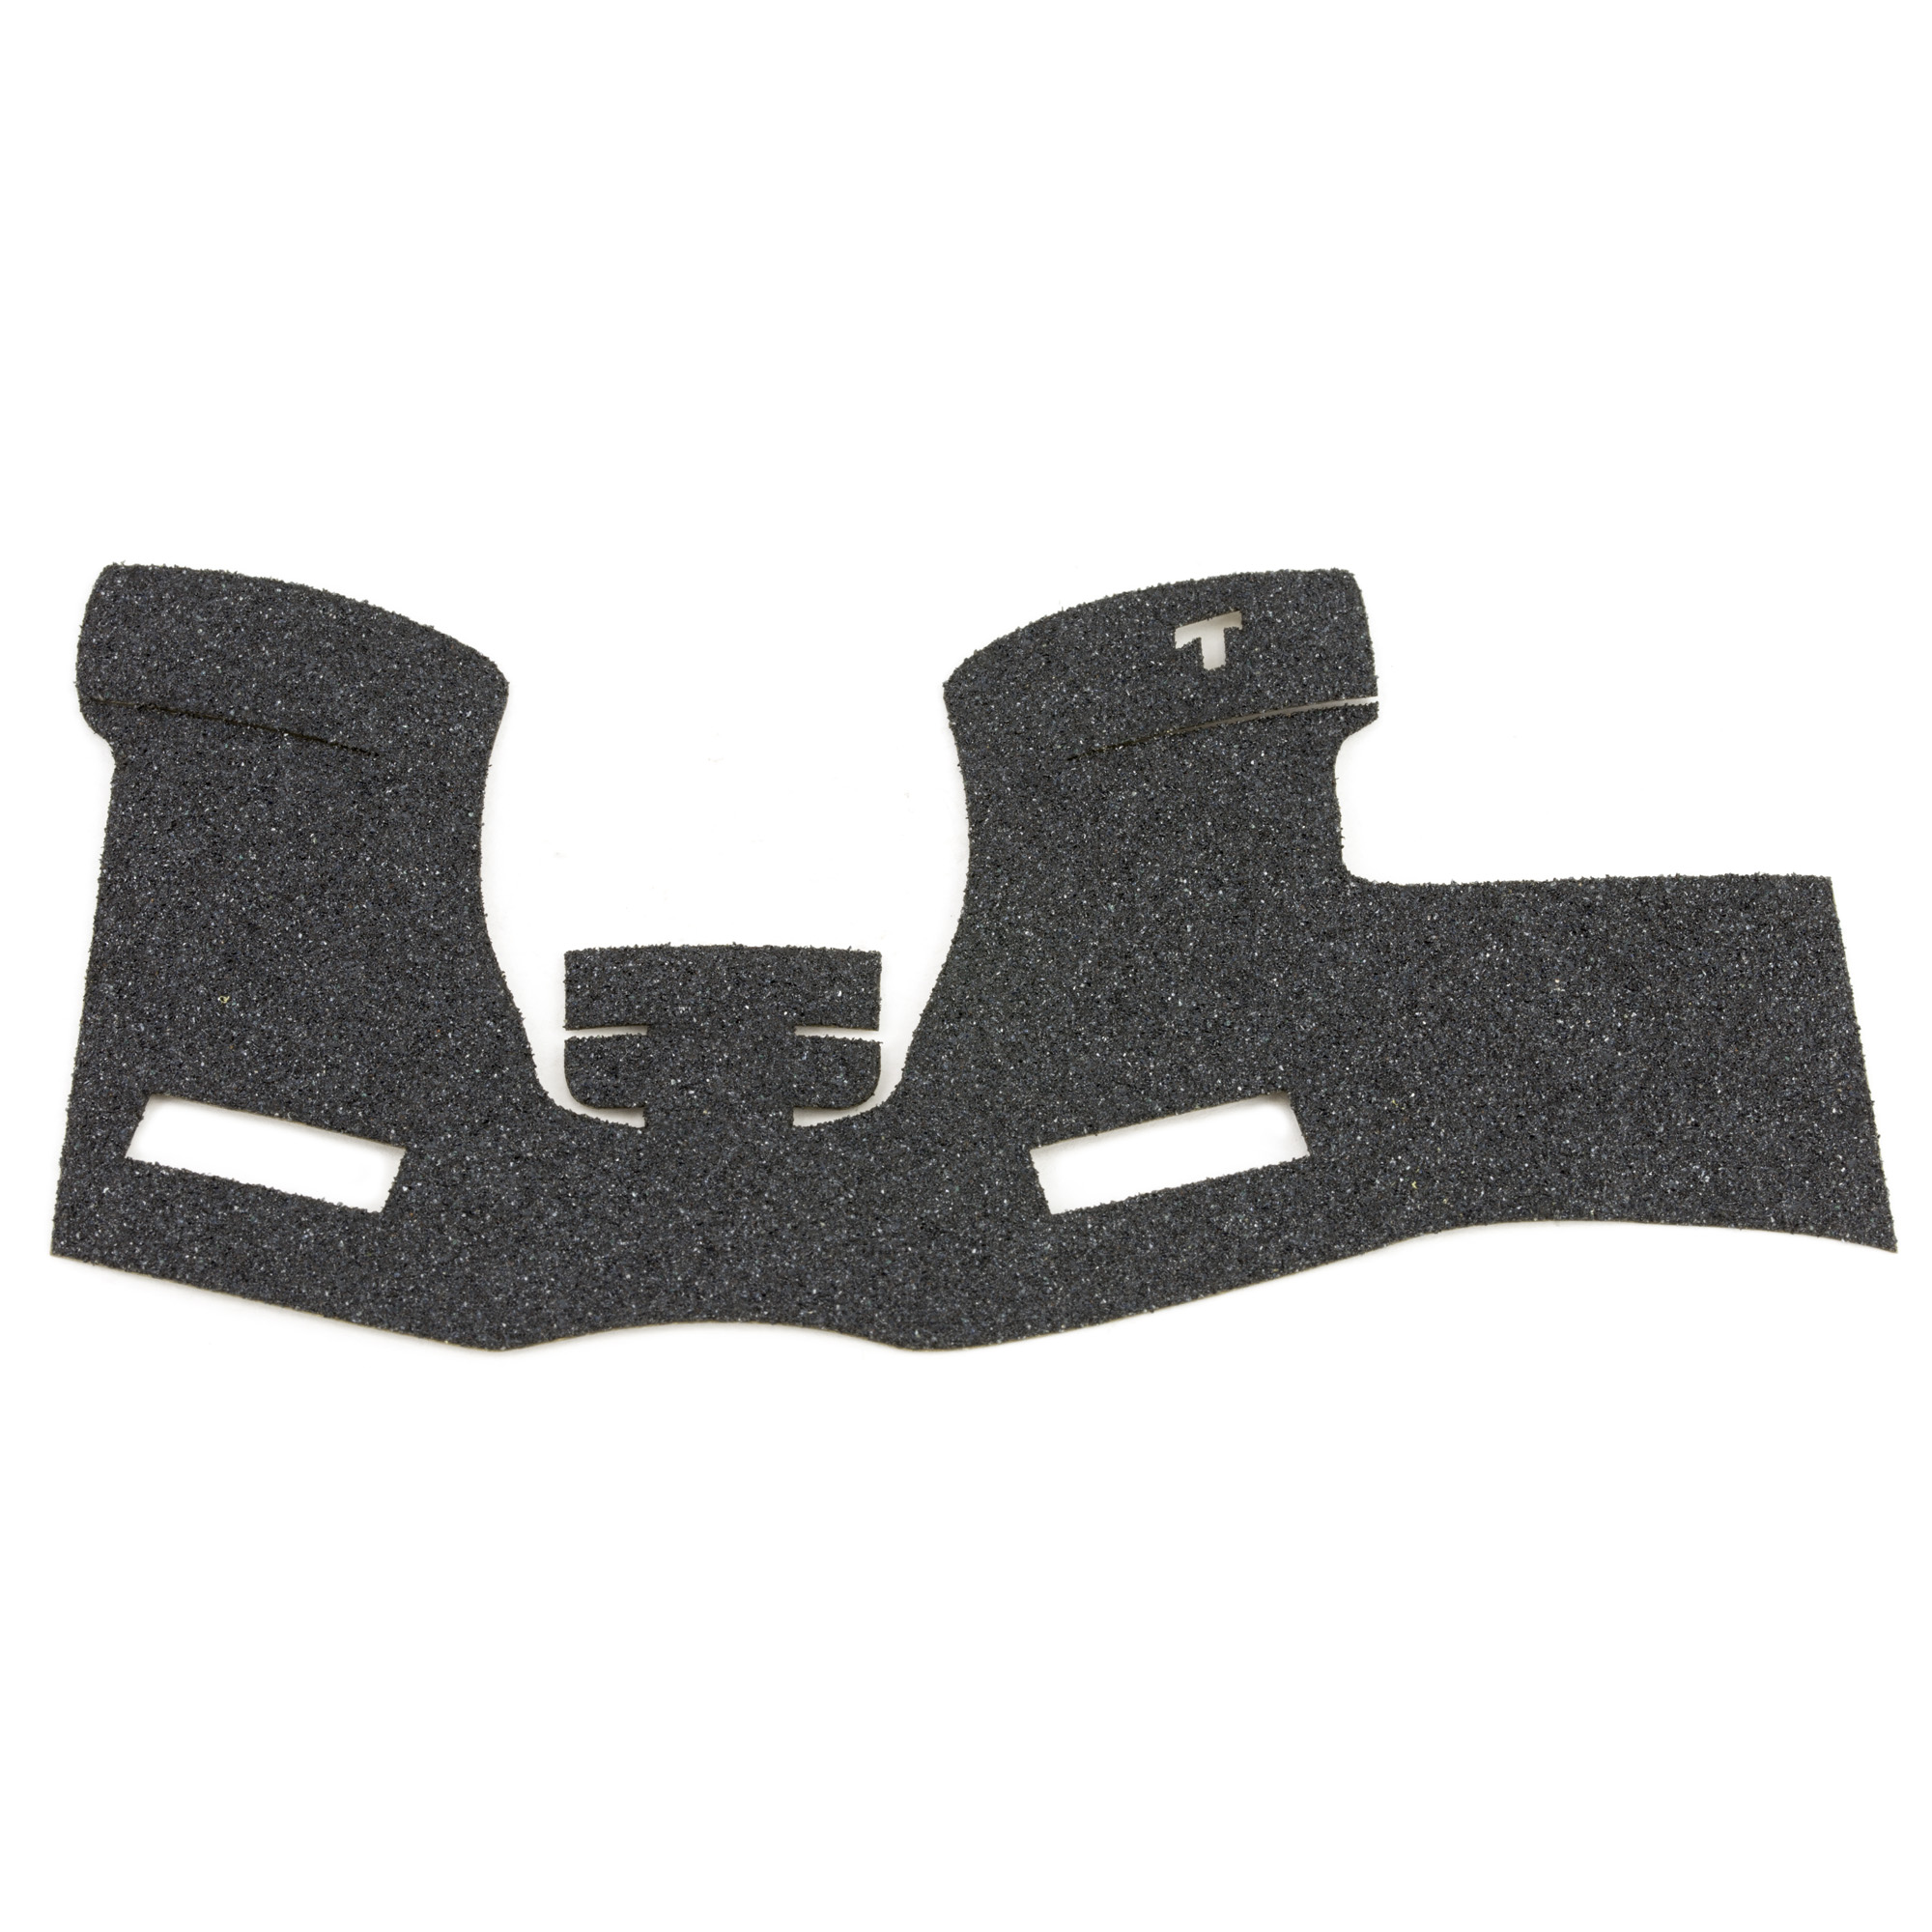 """TALON Grips for Springfield Subcompact 9mm or .40 models. This rear wrap grip is in the granulate texture. It has full coverage on the side panels through the thumb rest"""" logo cutouts on each side"""" ample coverage on the backstrap and full coverage under the trigger guard. Grips for the XD Gear Mag X-Tension extended magazine are available for this model (sold separately)."""